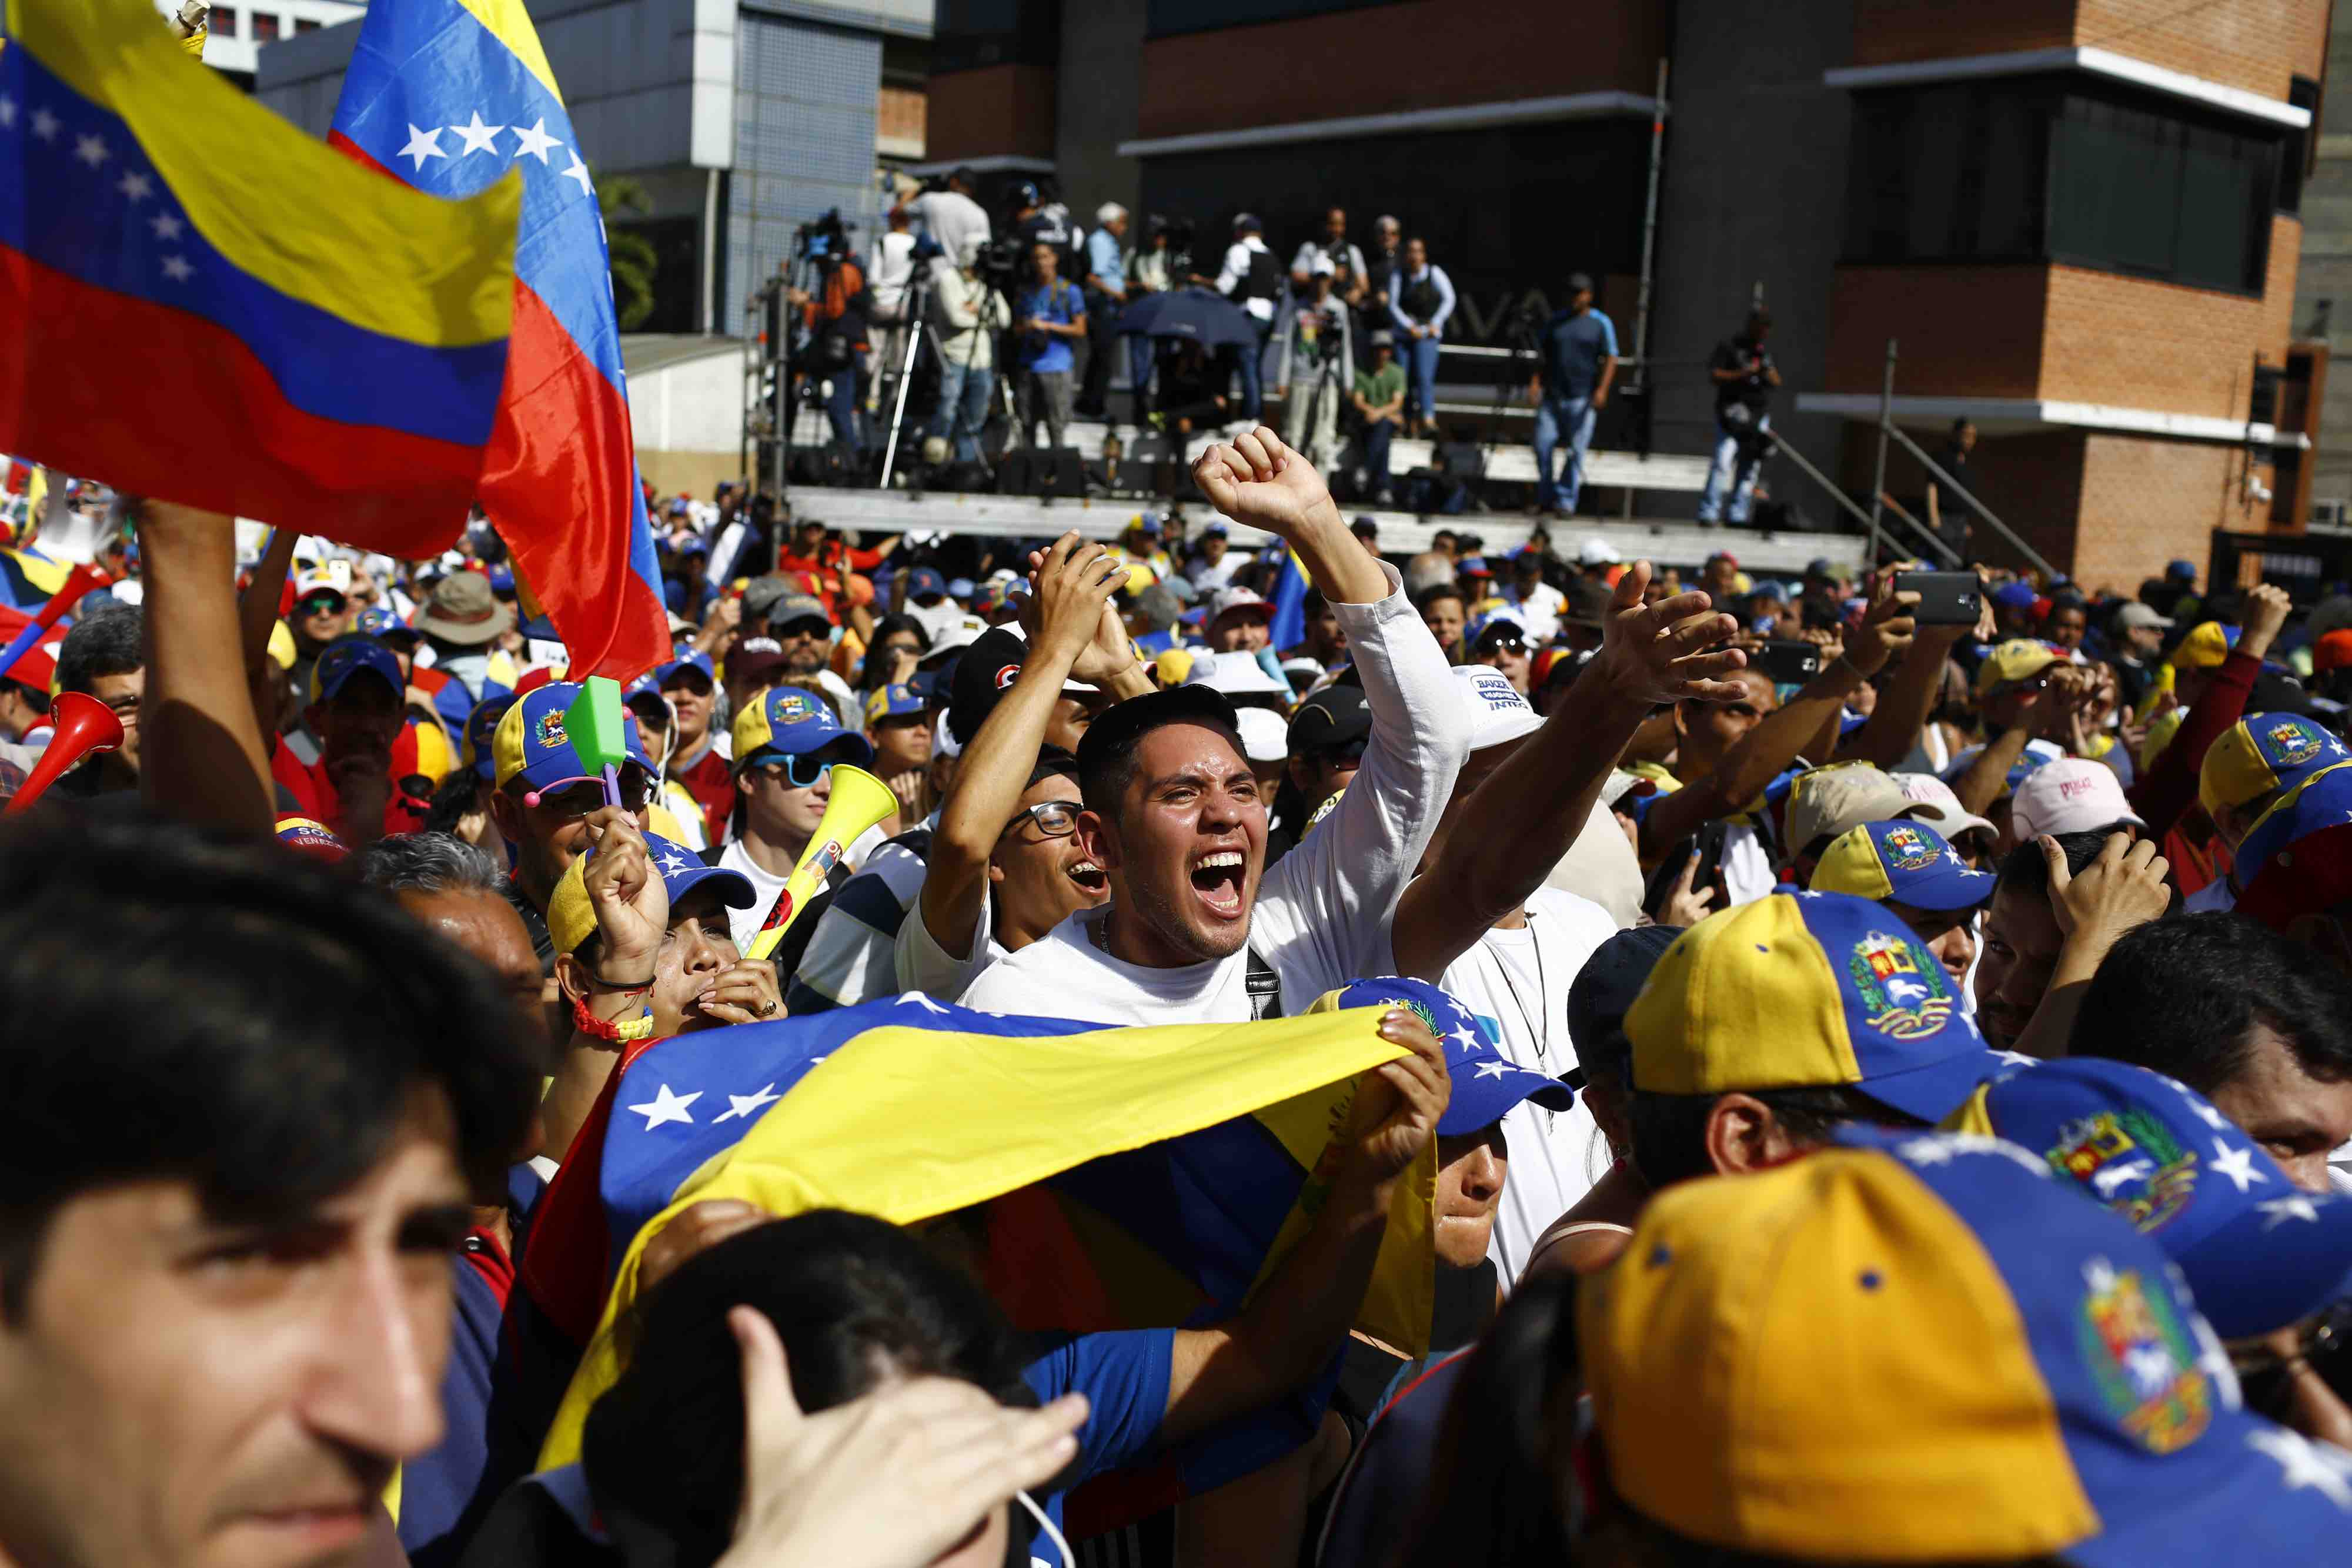 A Look at the Misconceptions About Venezuela's Political Crisis